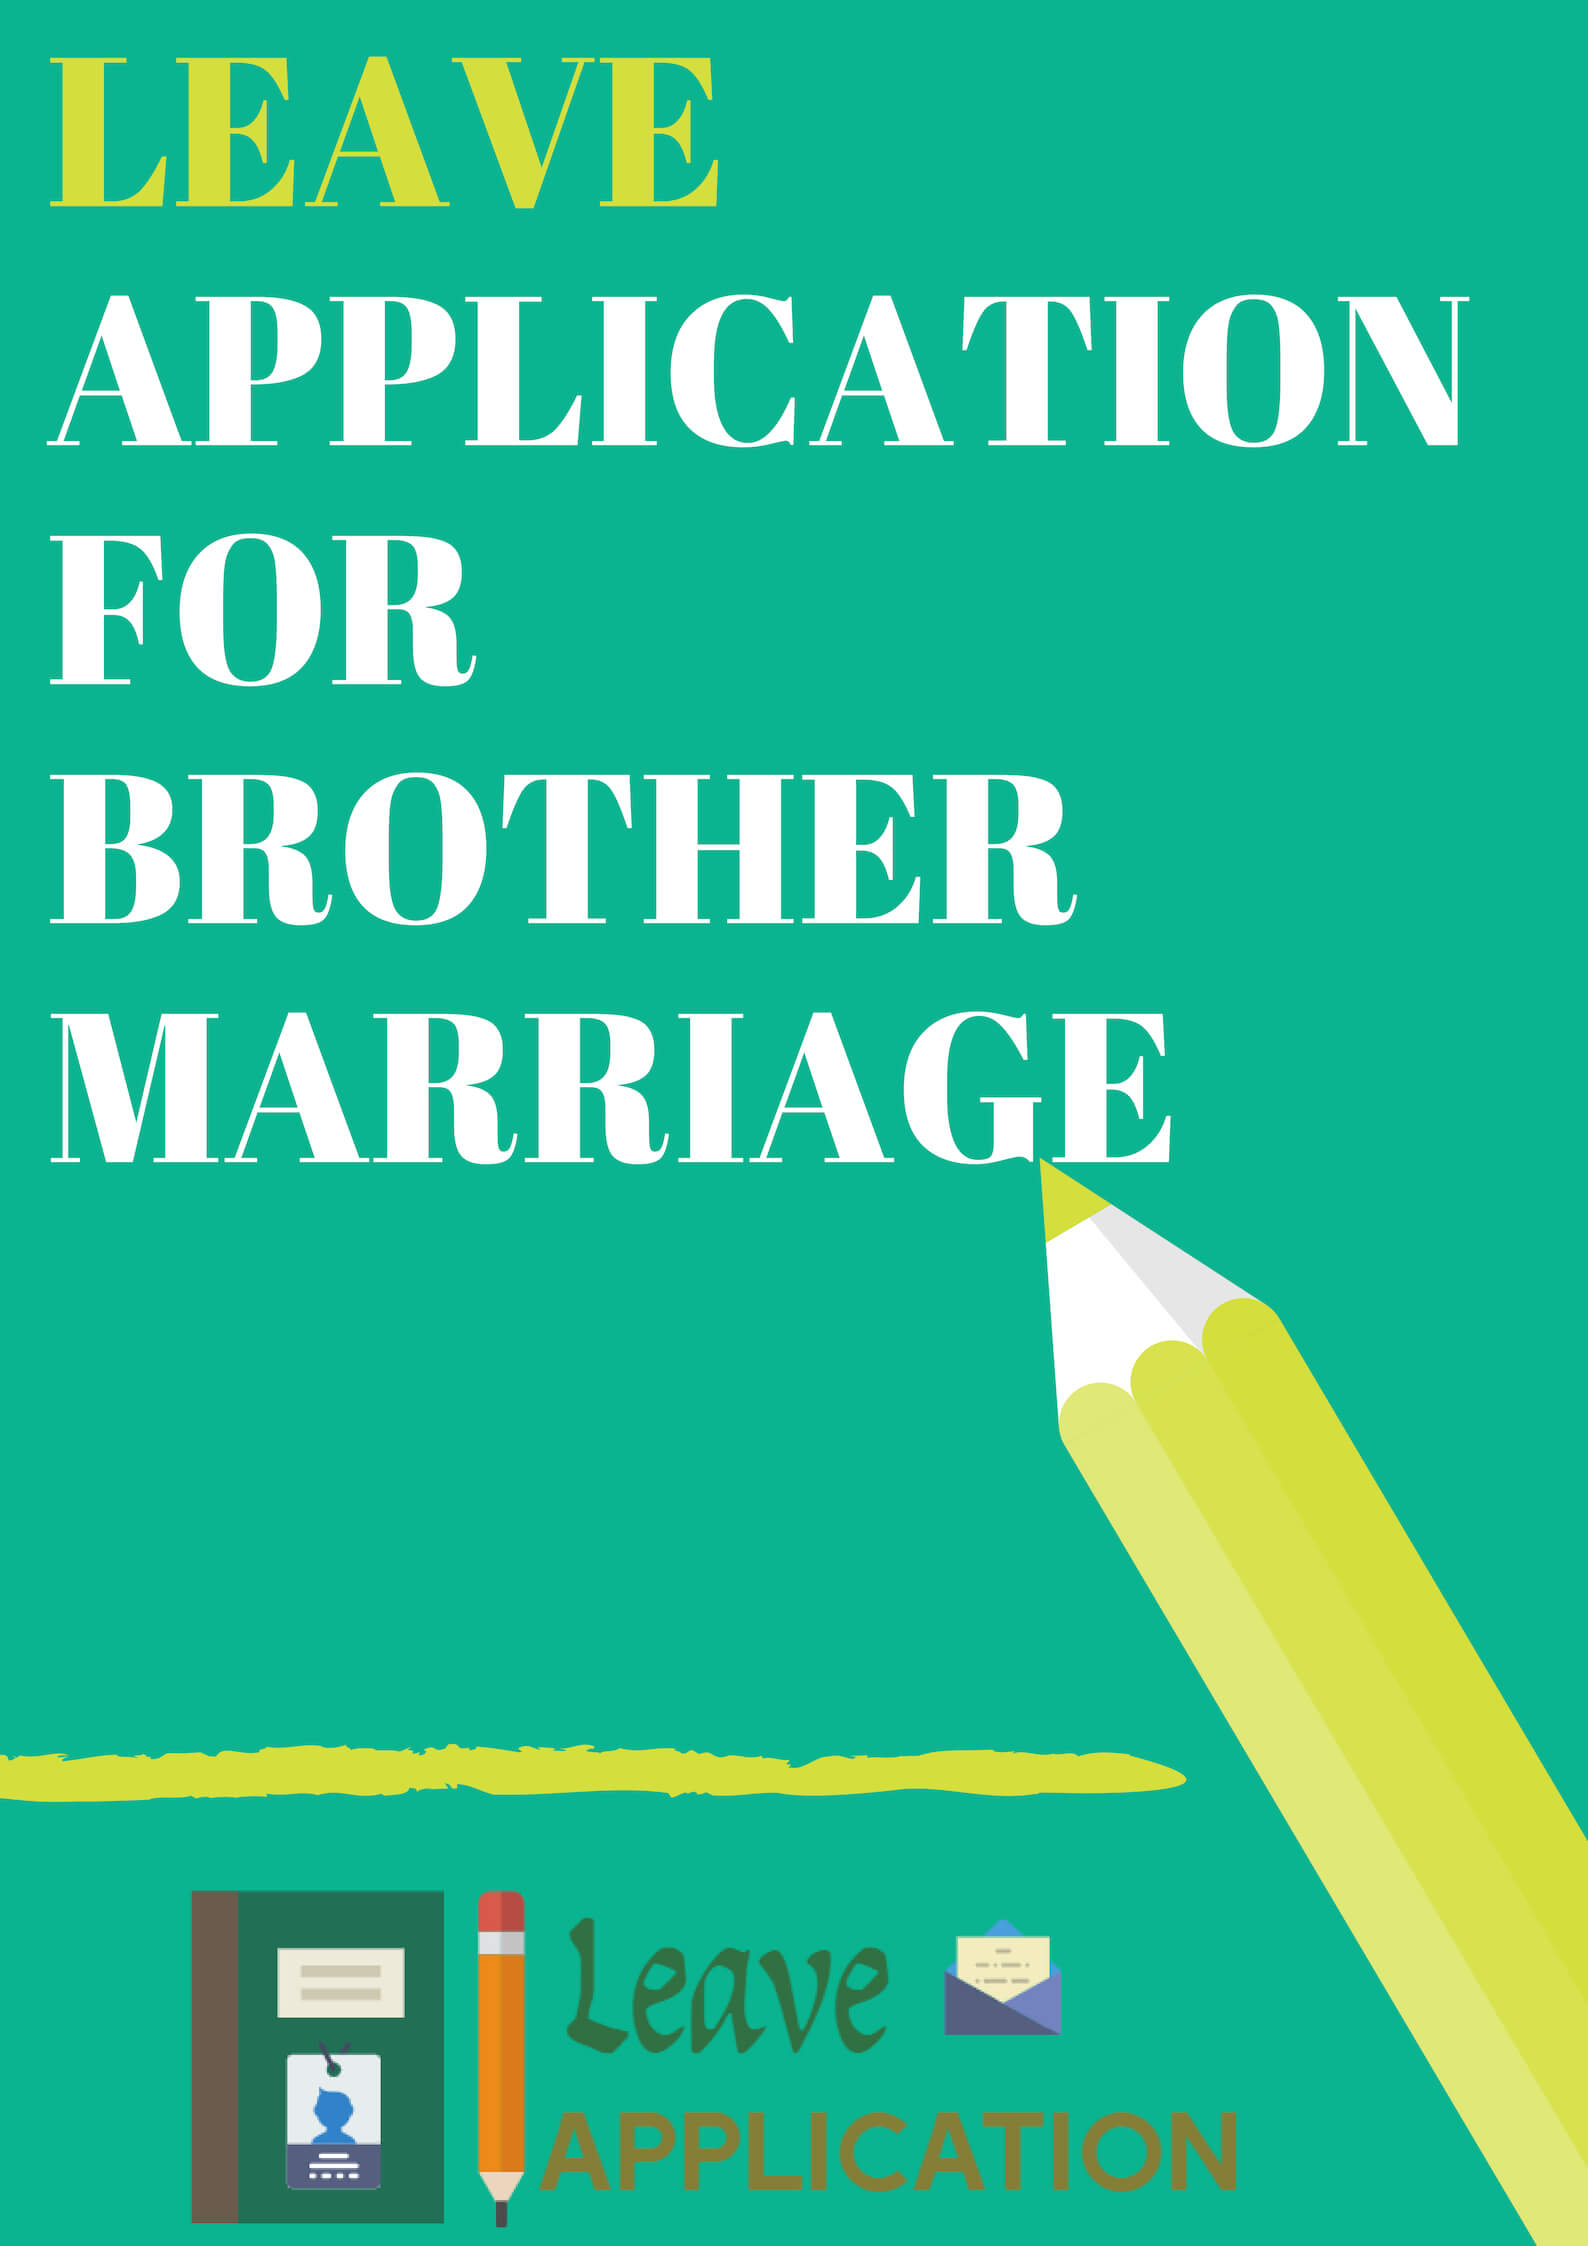 Sample Leave Application For Brother Marriage | To principle